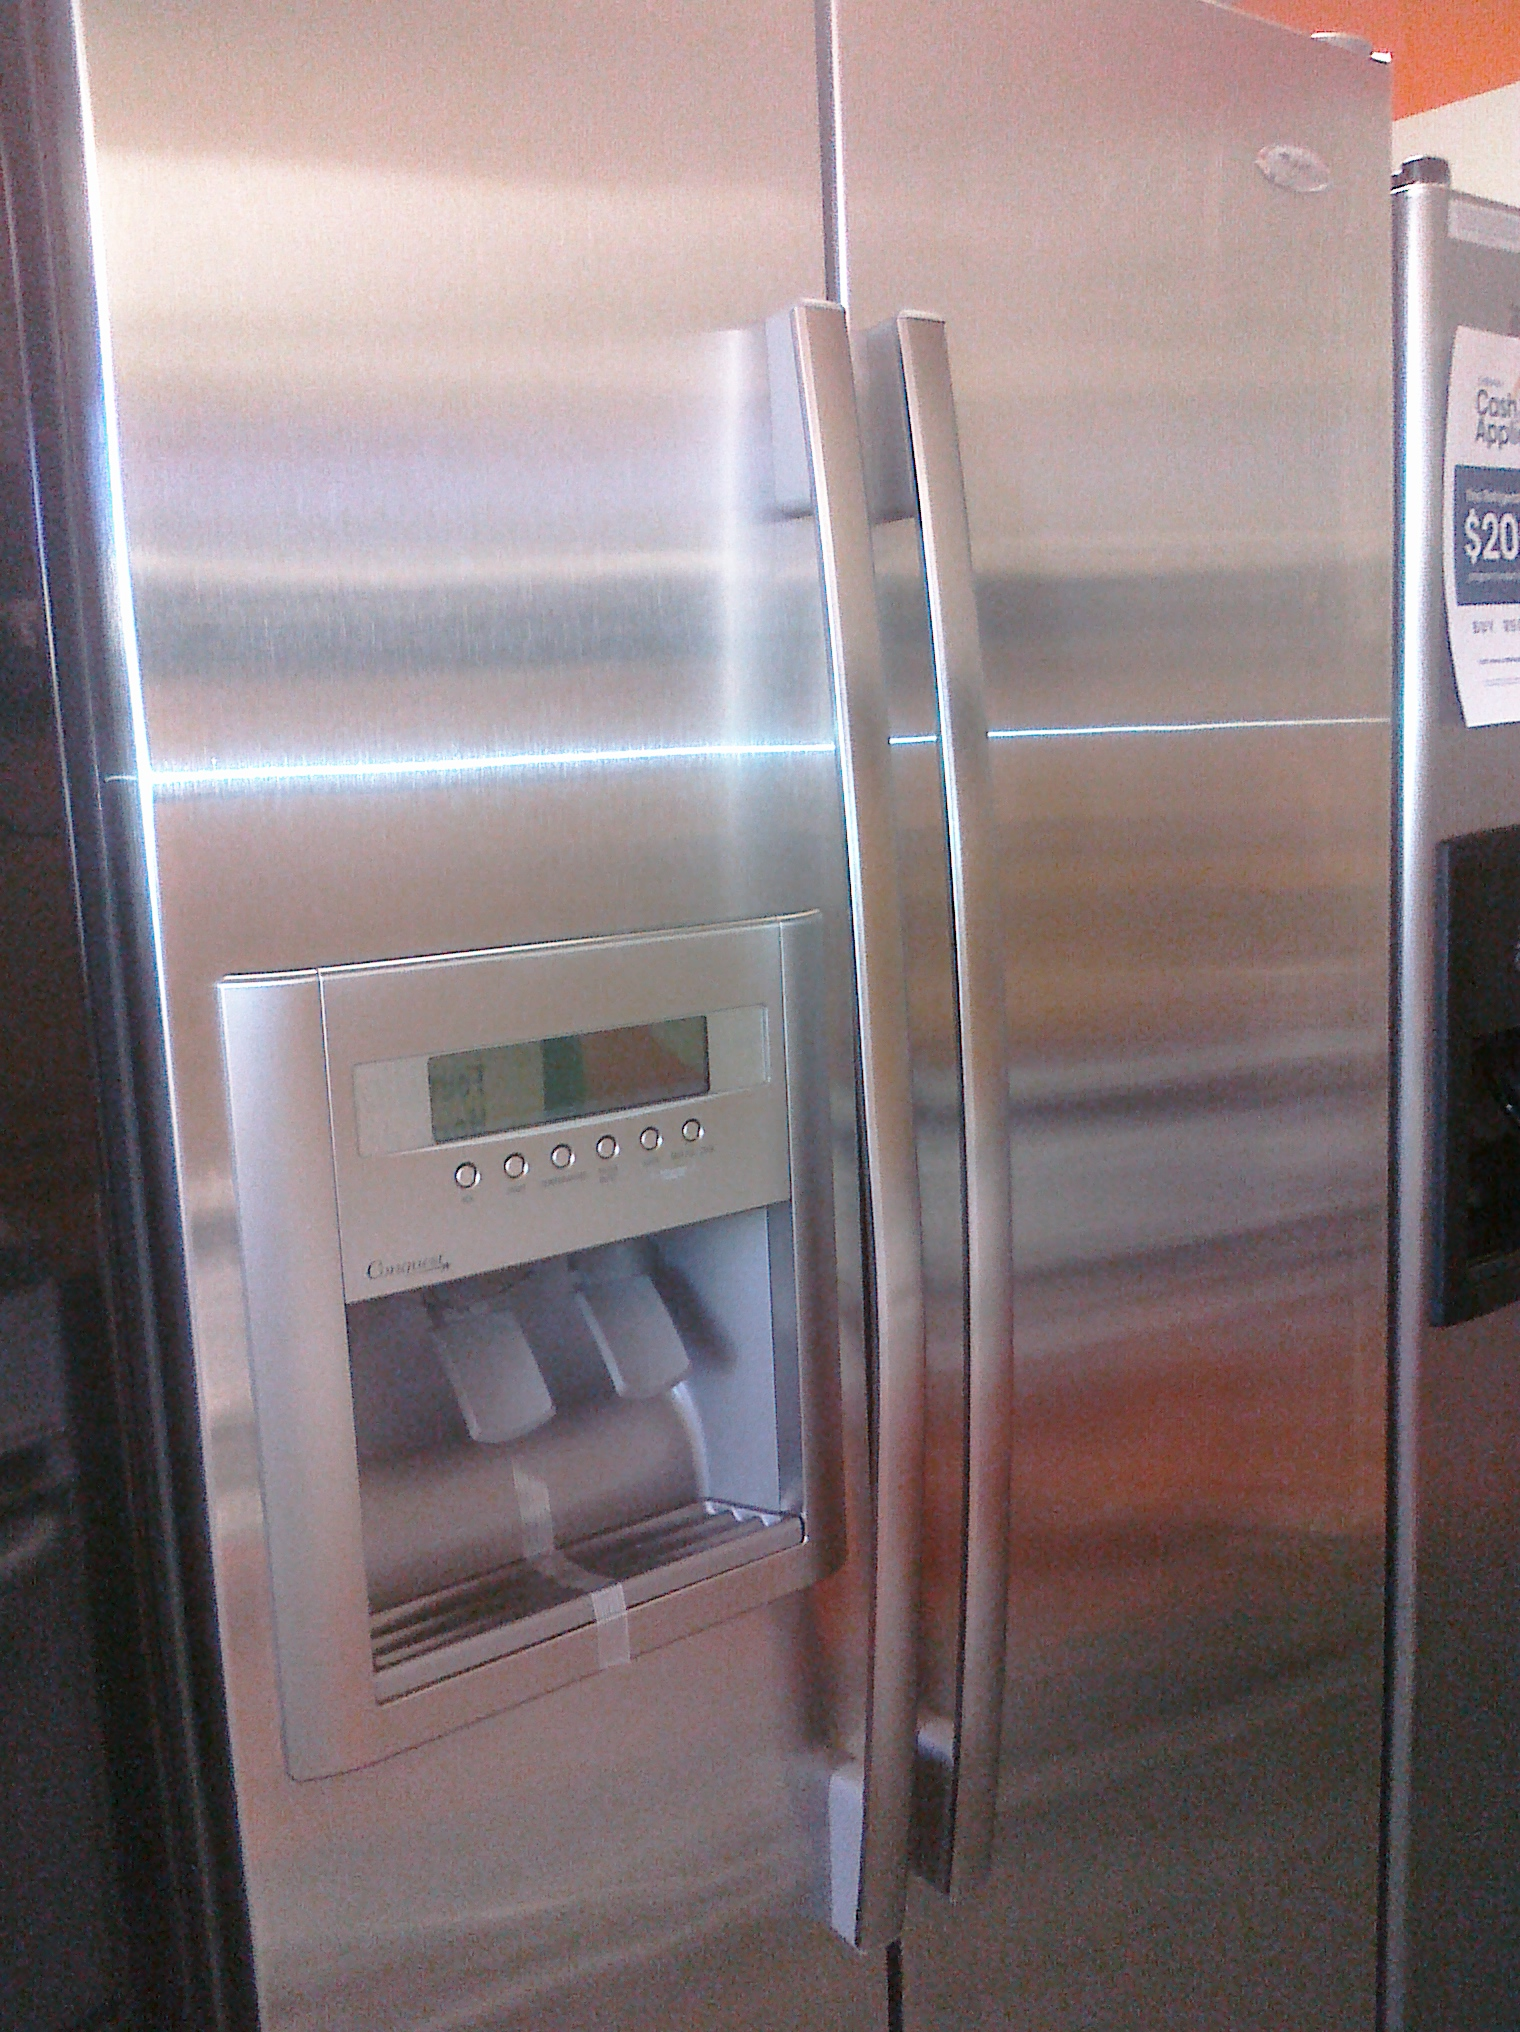 9 Whirlpool Gd5rvaxvy 25 Cubic Foot Side By Side